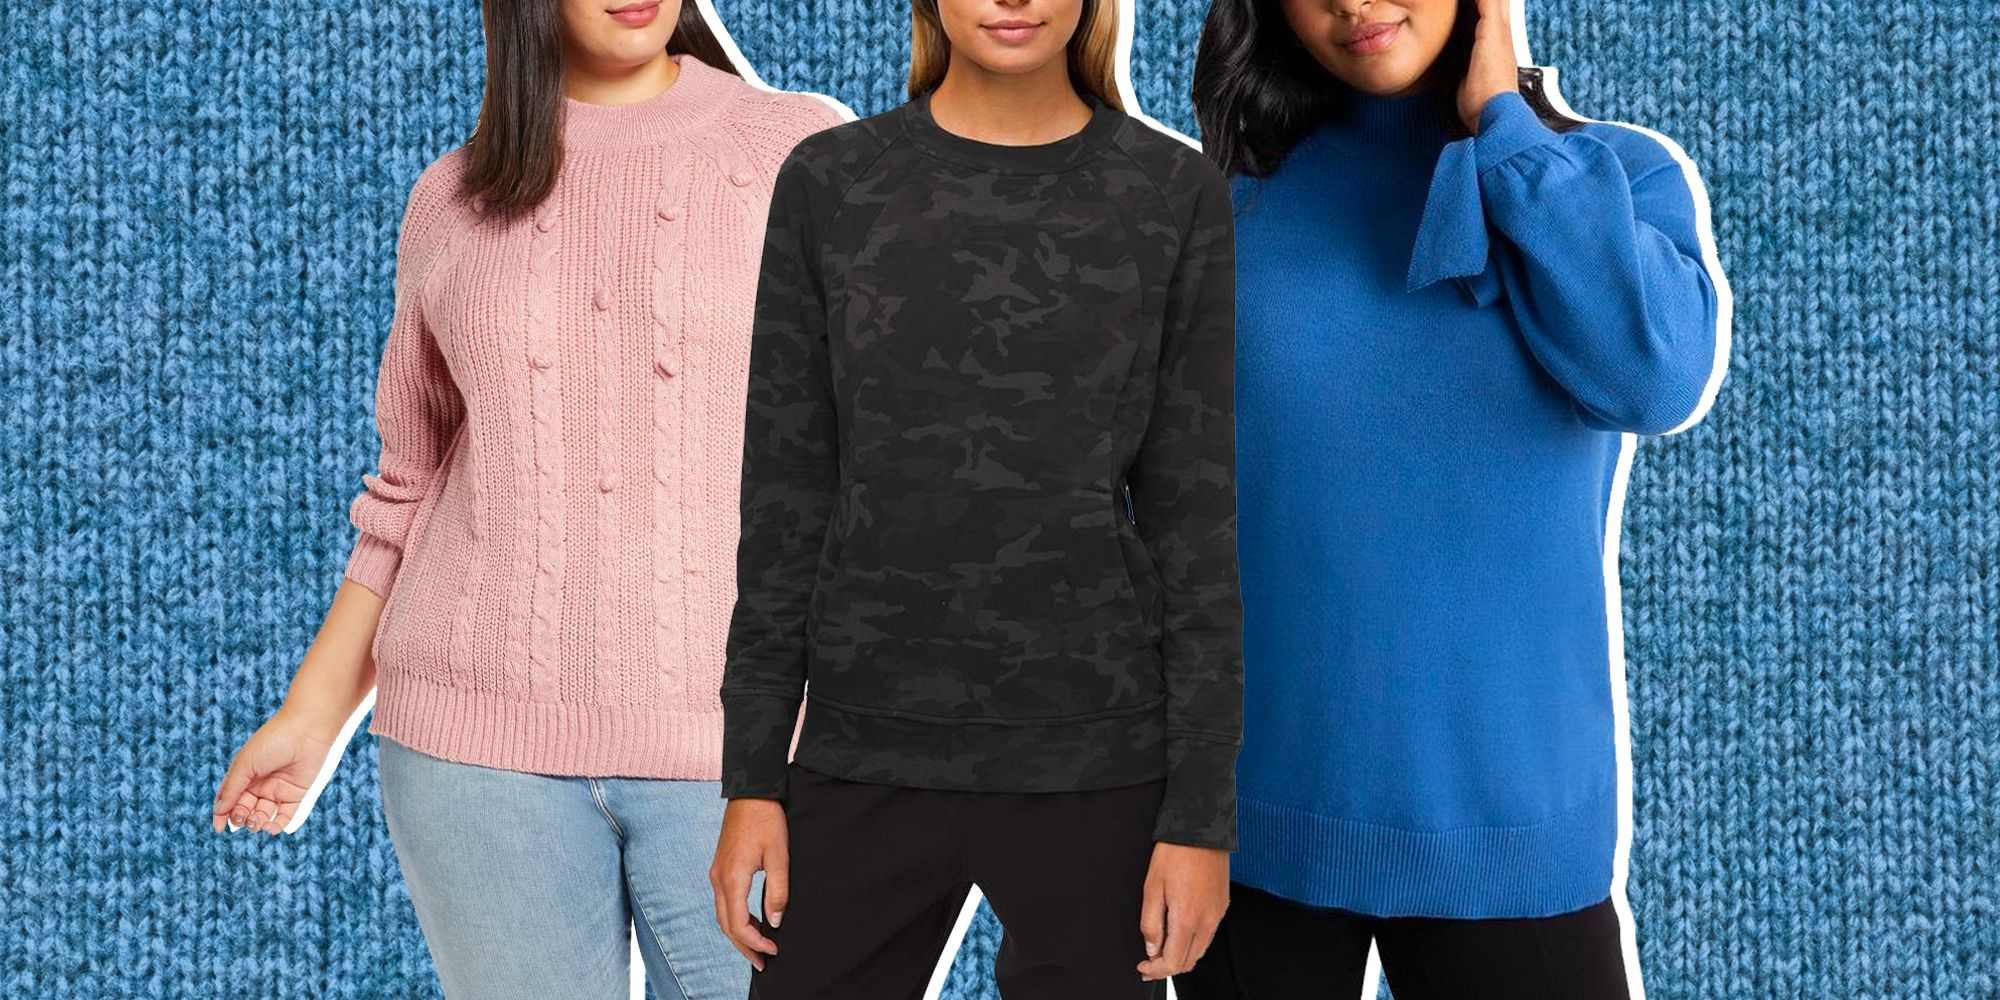 22 Cute Fall Sweaters 2020 Cozy and Oversized Knit Sweaters